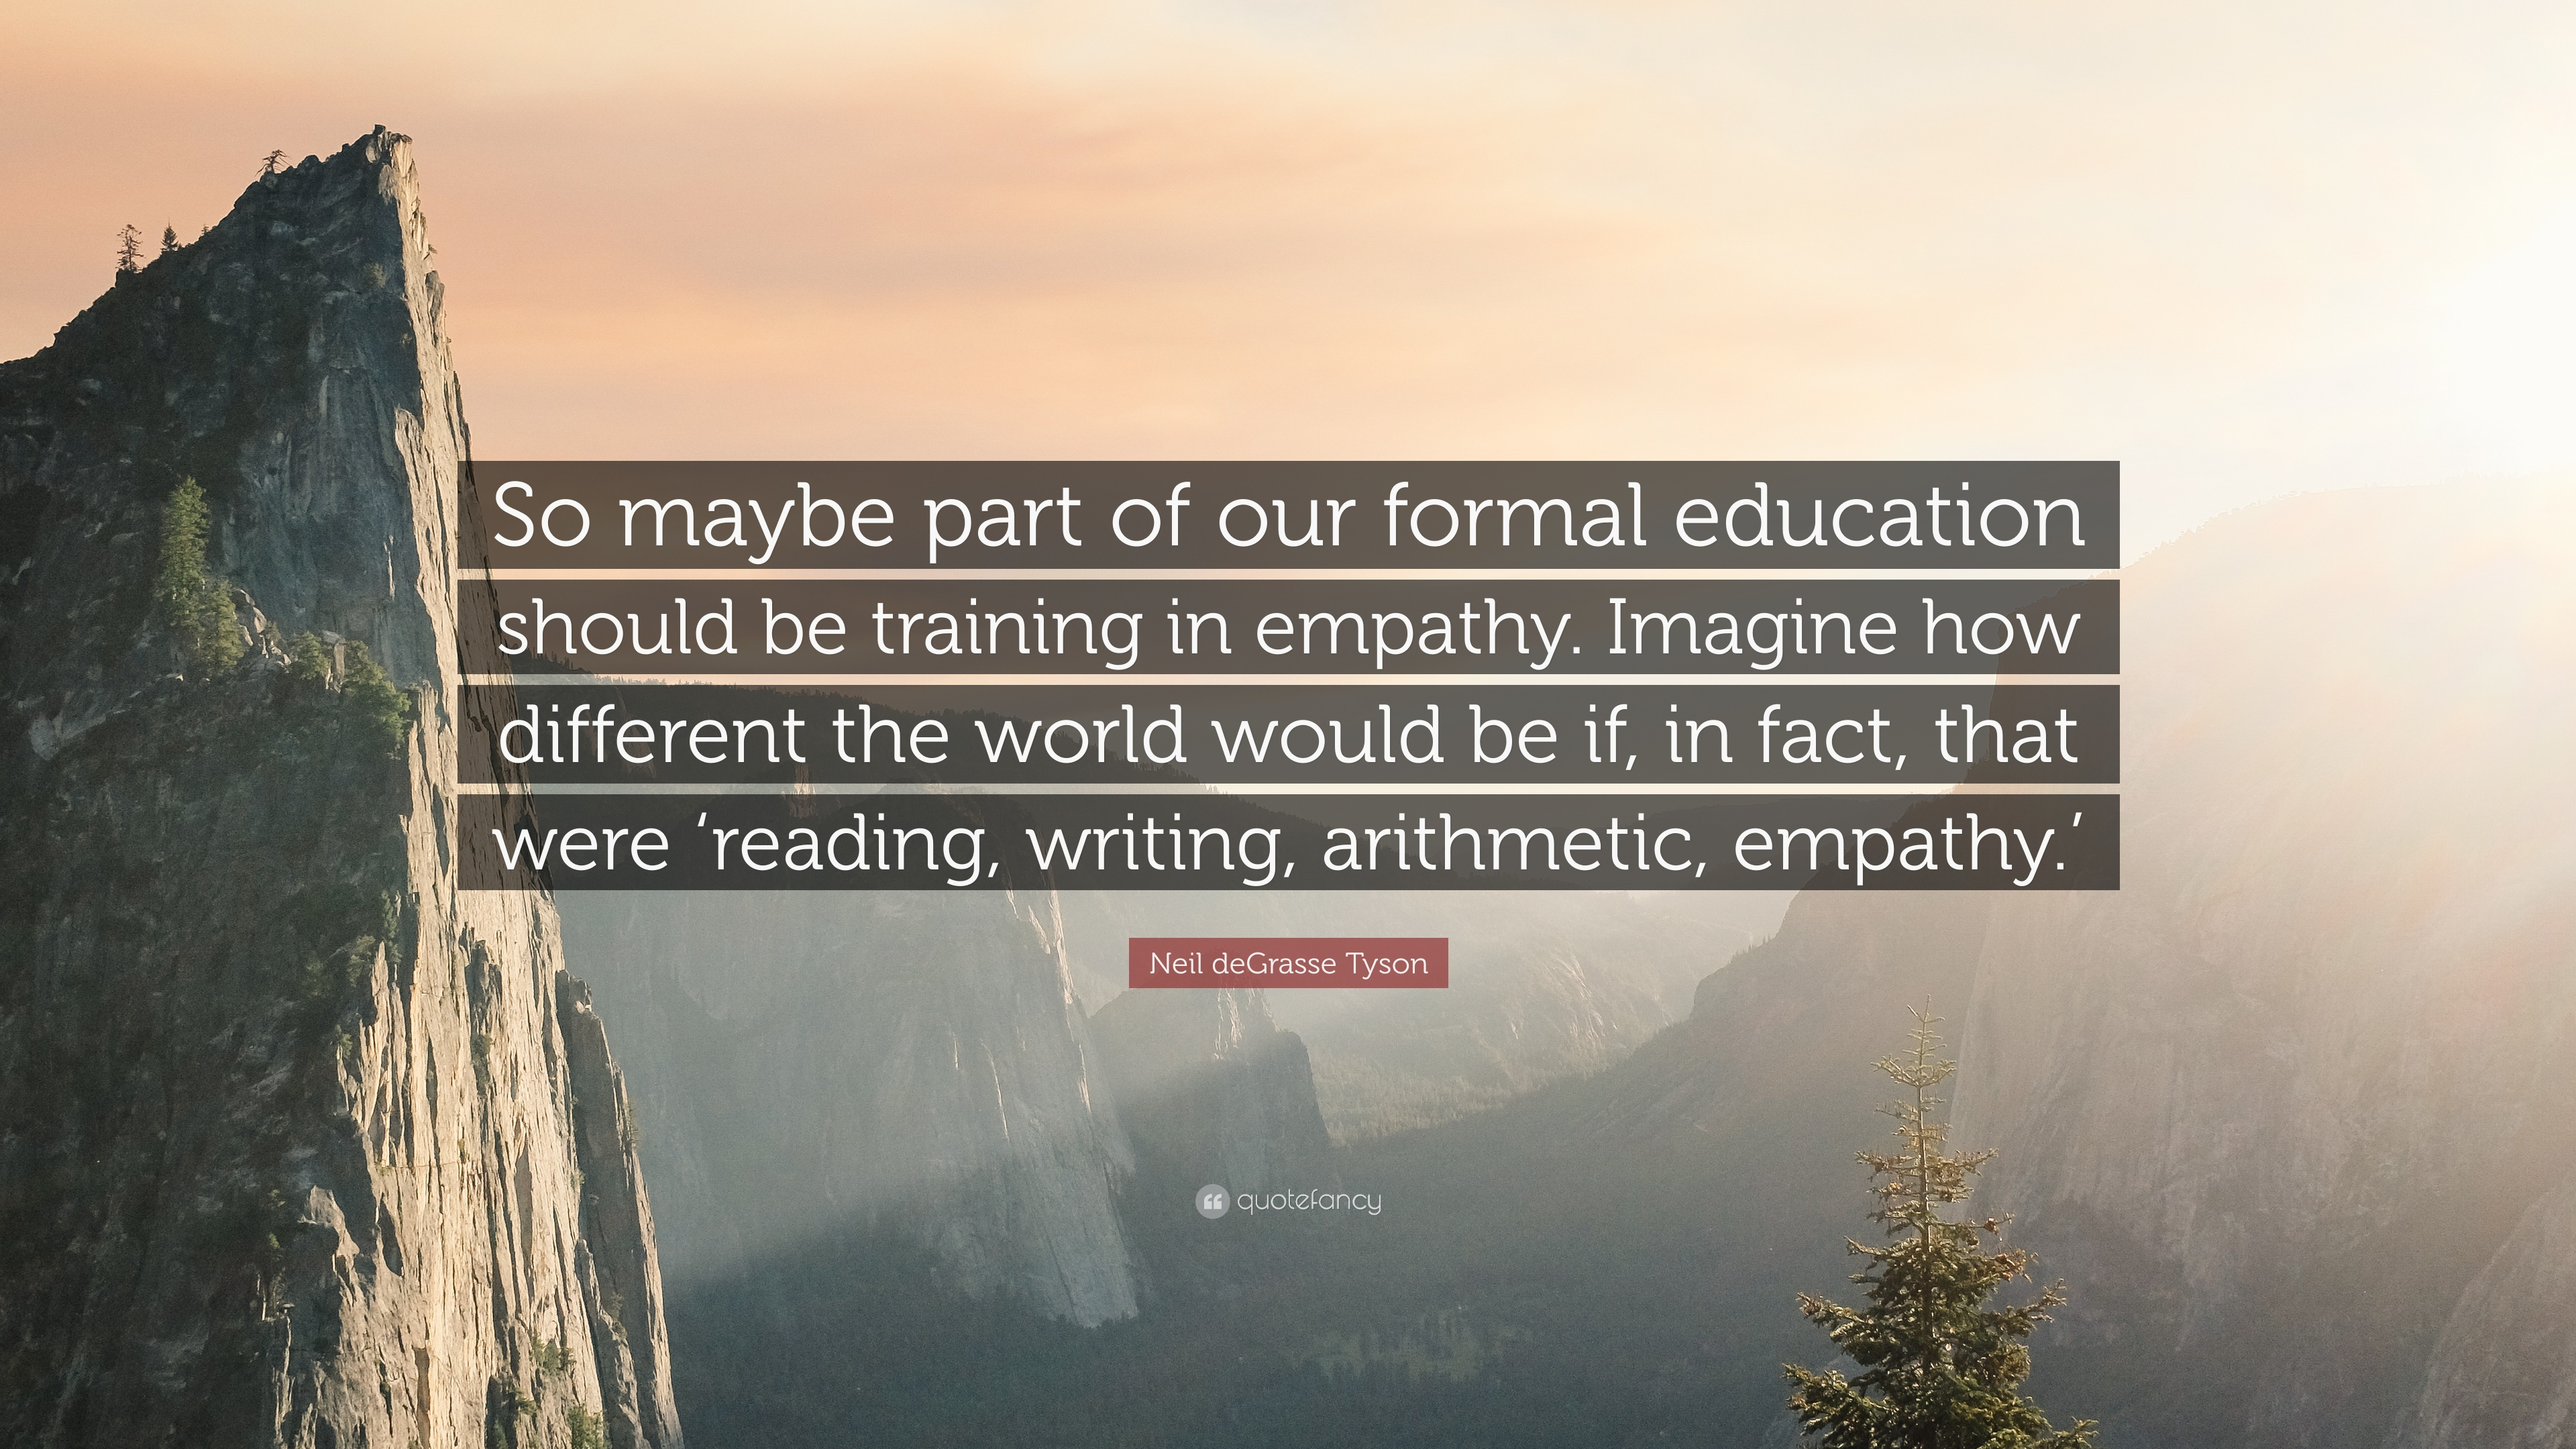 neil degrasse tyson quote so maybe part of our formal education